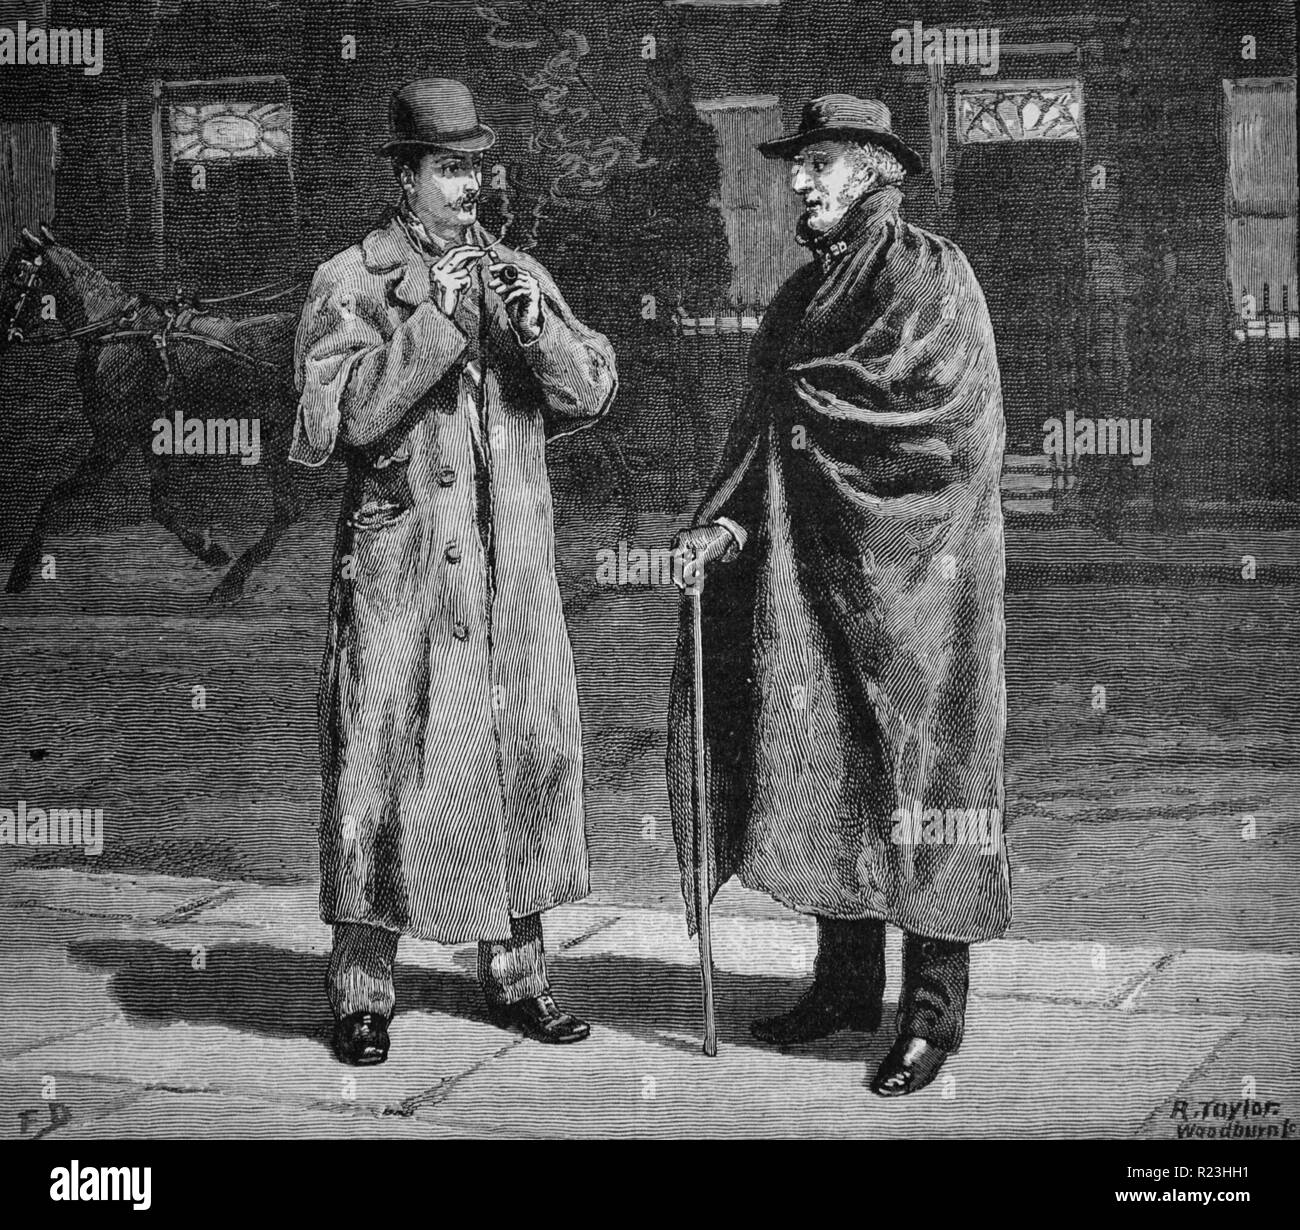 Street scene on winter night, elderly man with stick and wearing a coat, in conversation with younger man in greatcoat lighting his pipe. Magazine illustration by Frank Dadd (1851-1929), London, 1890. - Stock Image